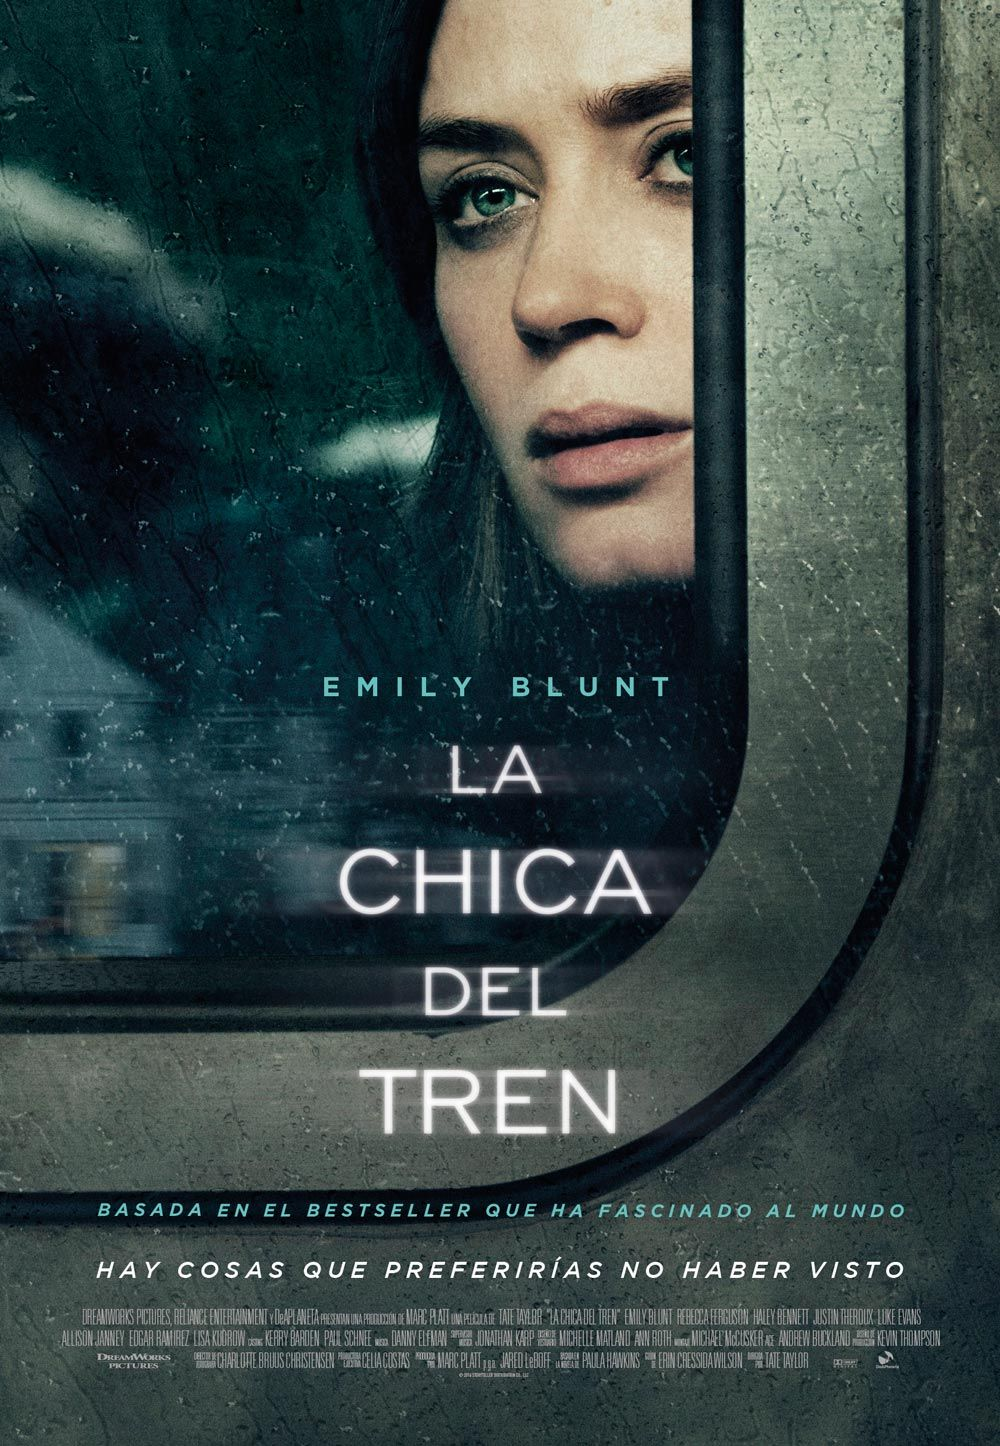 THE GIRL ON THE TRAIN MOVIE POSTER 2 Sided ORIGINAL FINAL 27x40 EMILY BLUNT